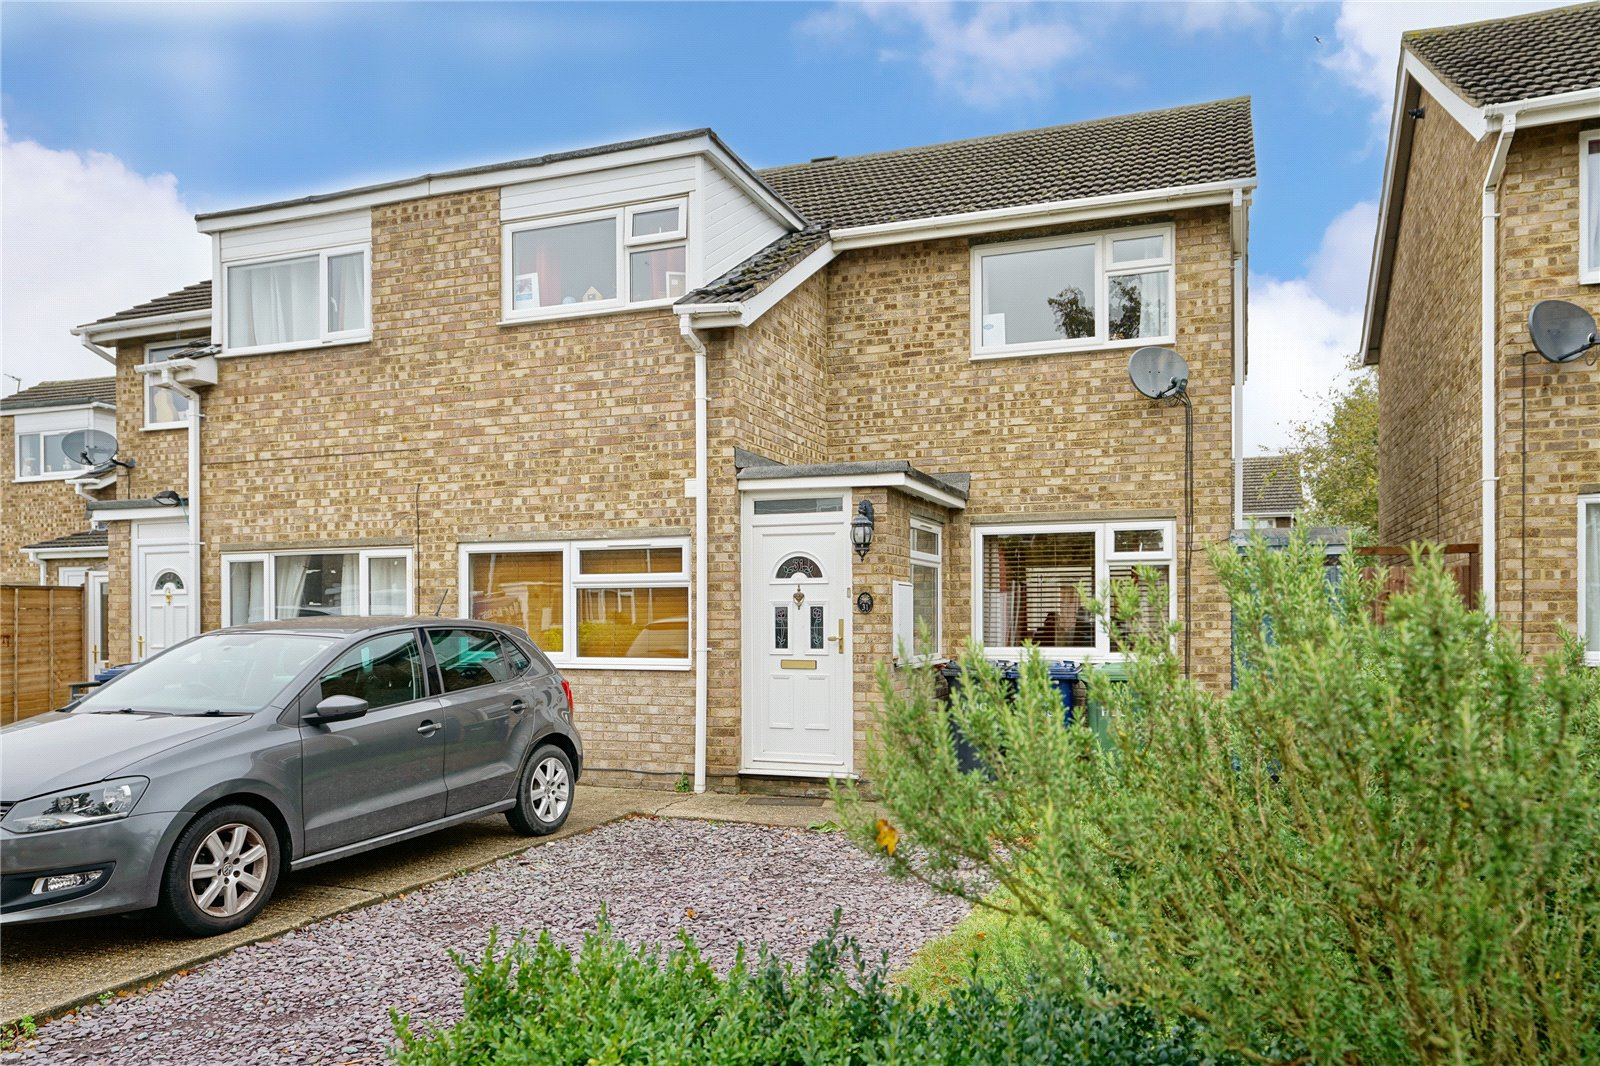 3 bed house for sale in Eaton Ford, PE19 7RH, PE19